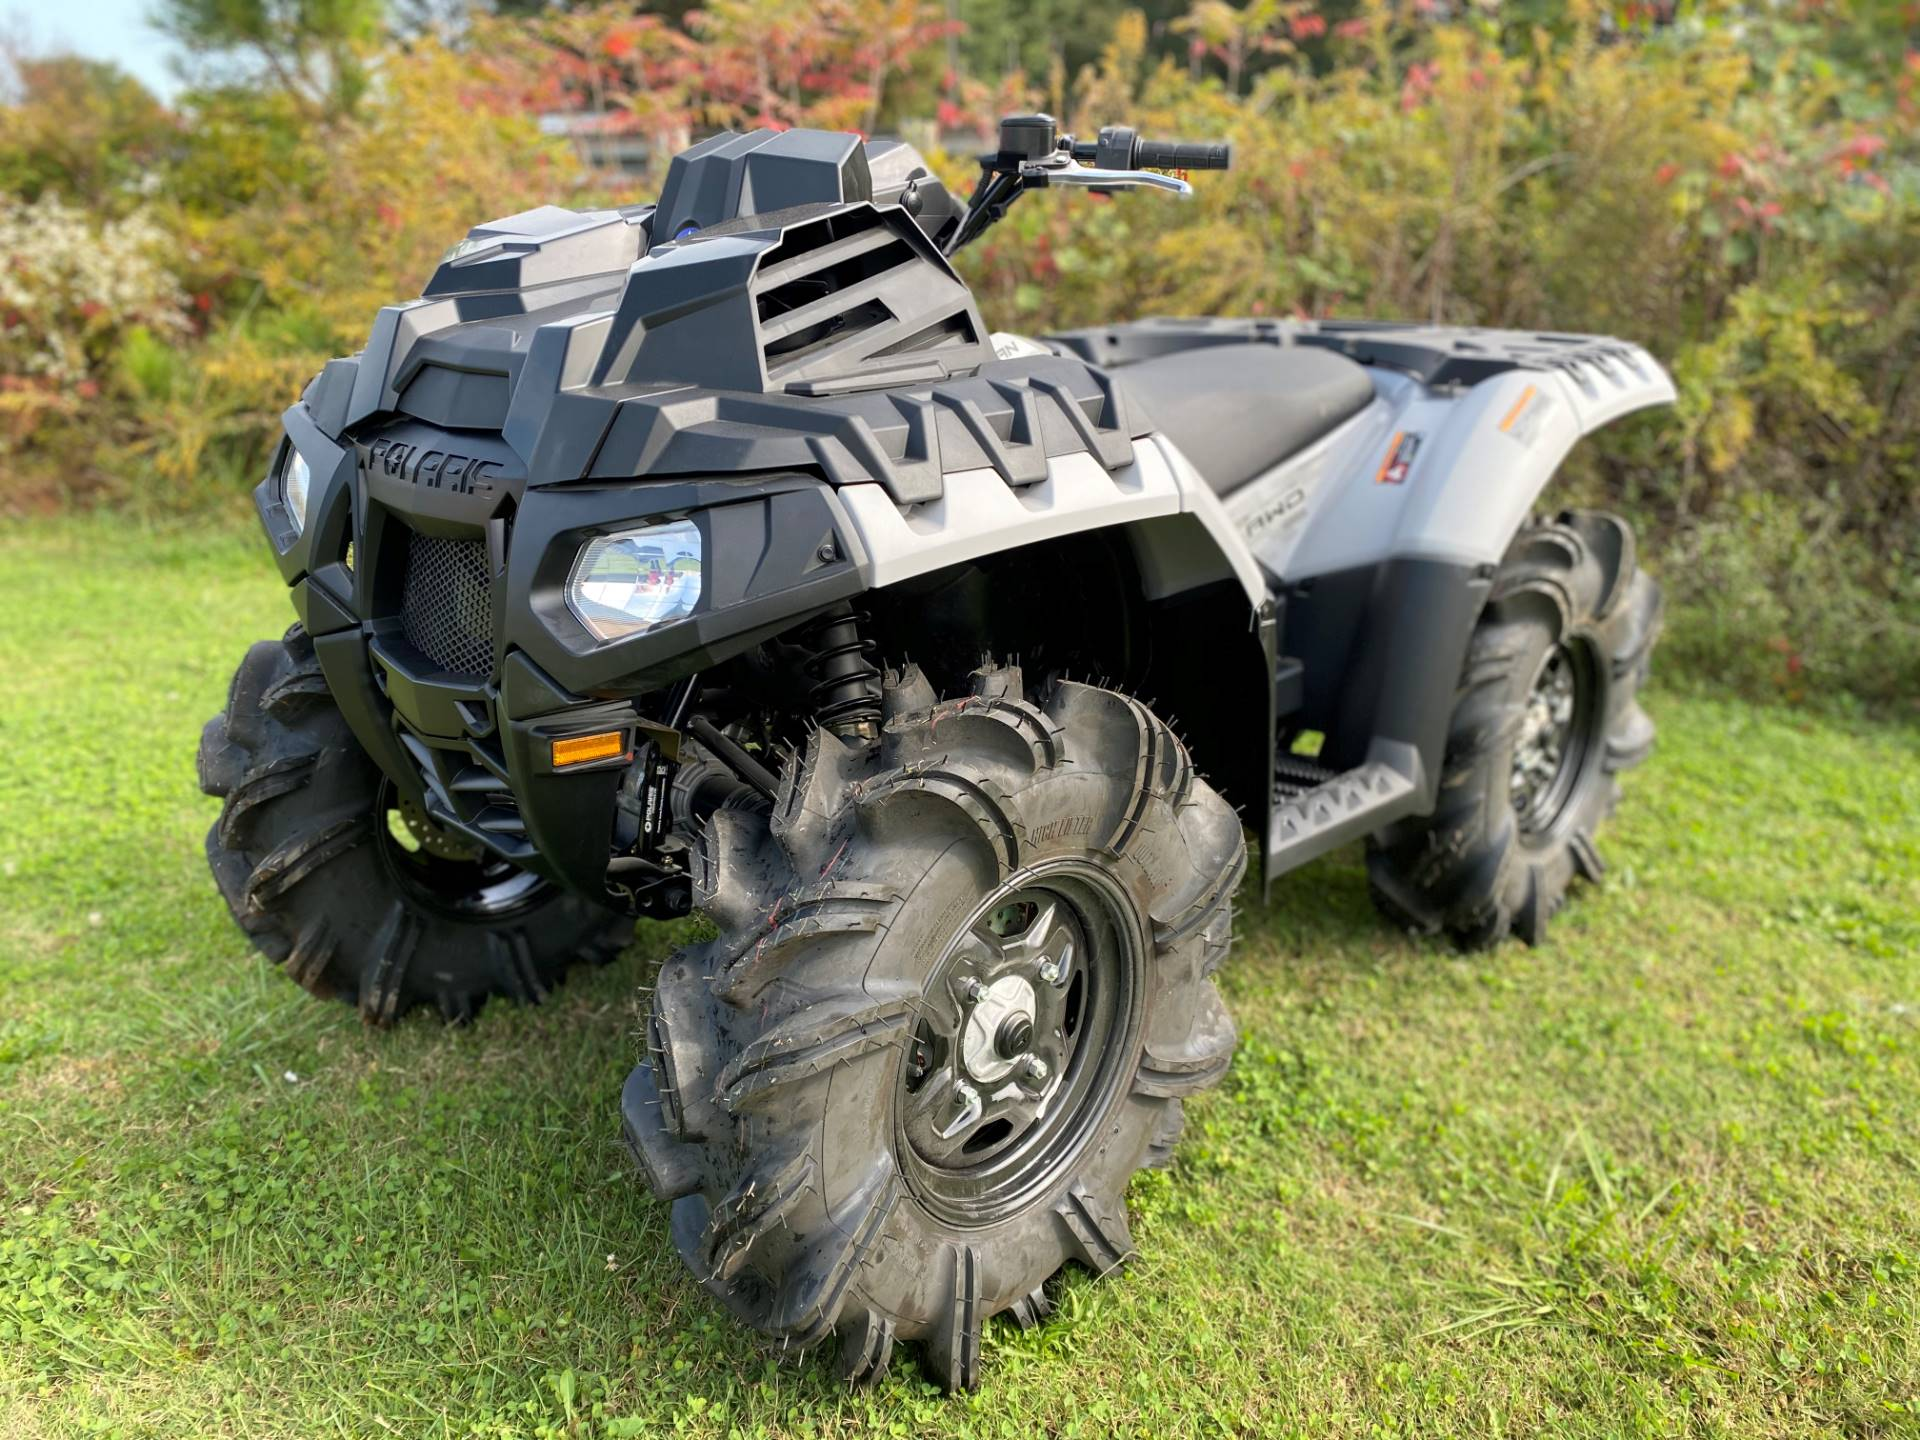 2021 Polaris Sportsman 850 High Lifter Edition in Greer, South Carolina - Photo 1